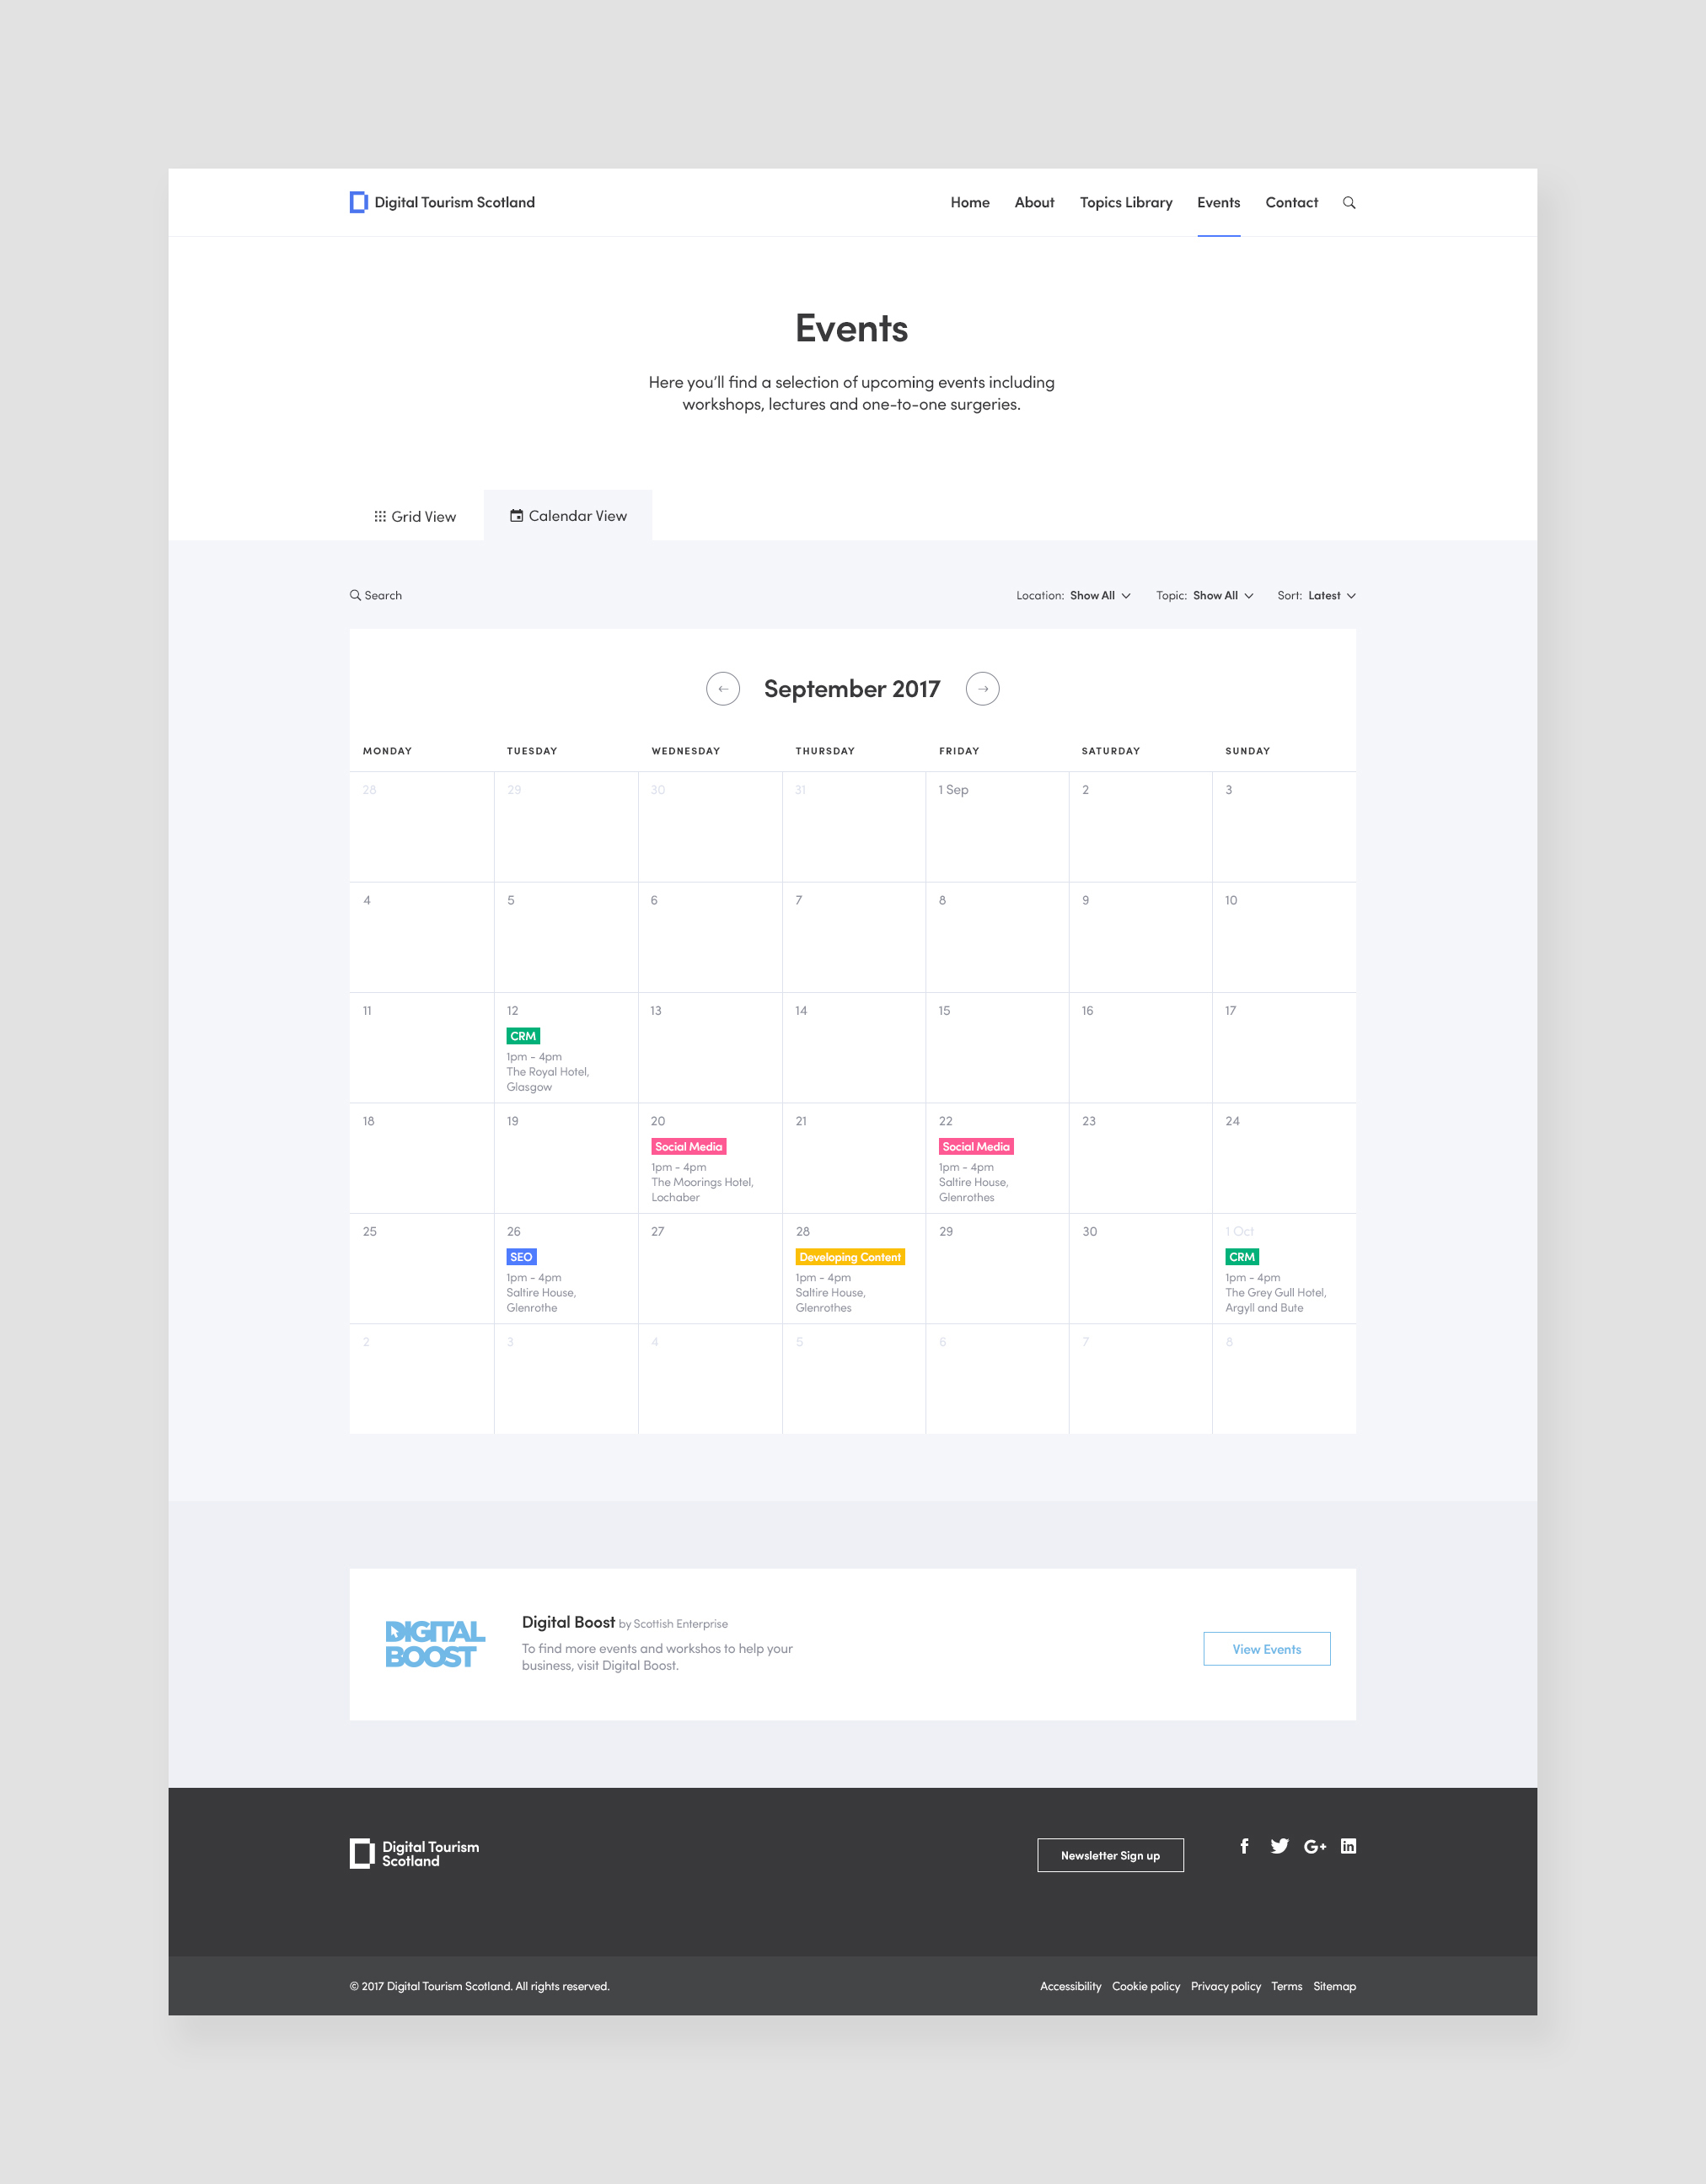 dts-mockup-website-events-calendar